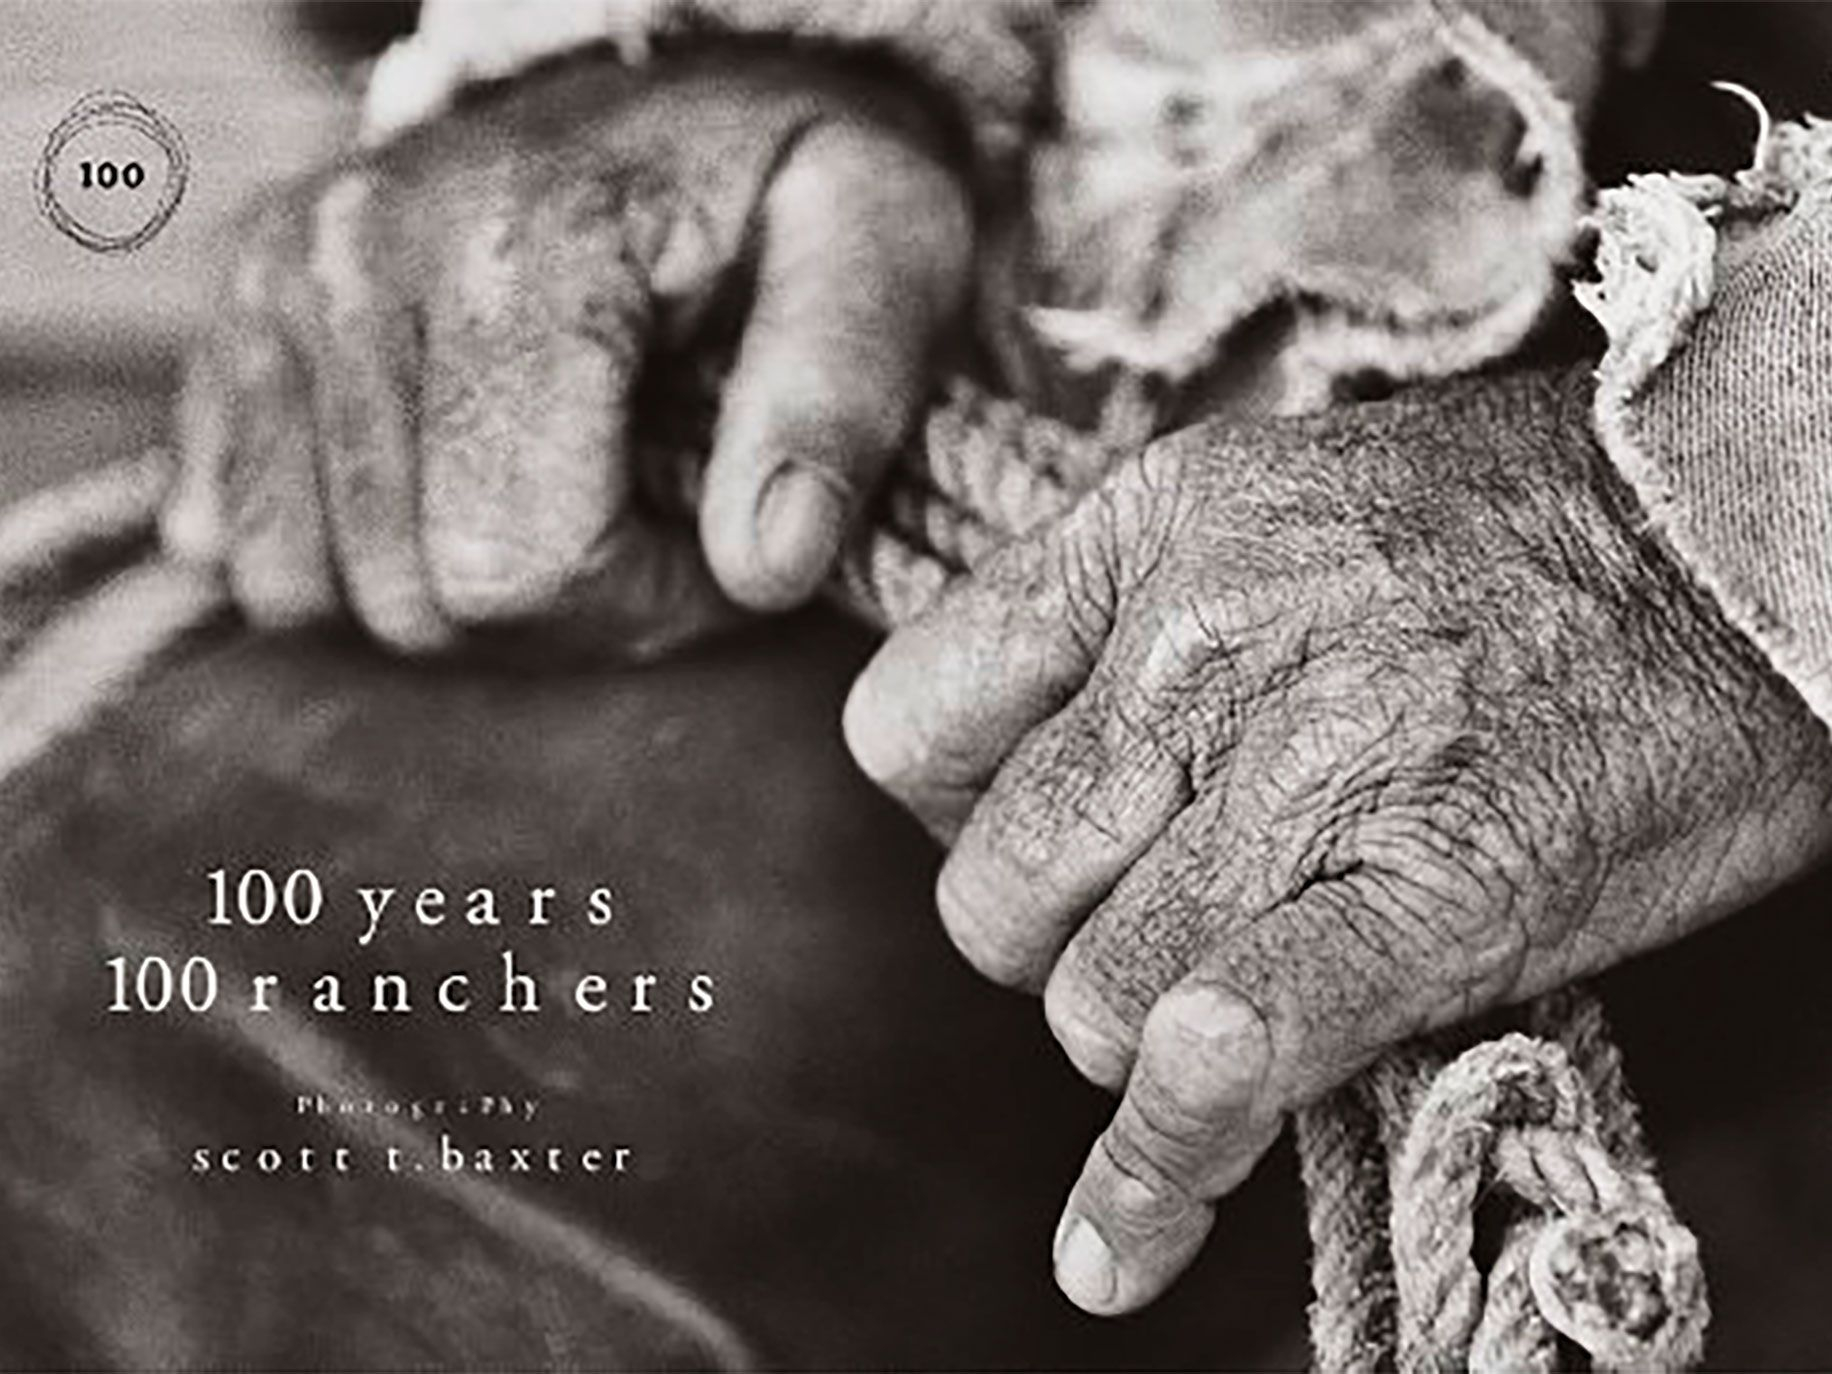 """""""100 Years 100 Ranchers"""" by Scott T. Baxter, 2012, Prisma Graphic Corp., 224 pages."""